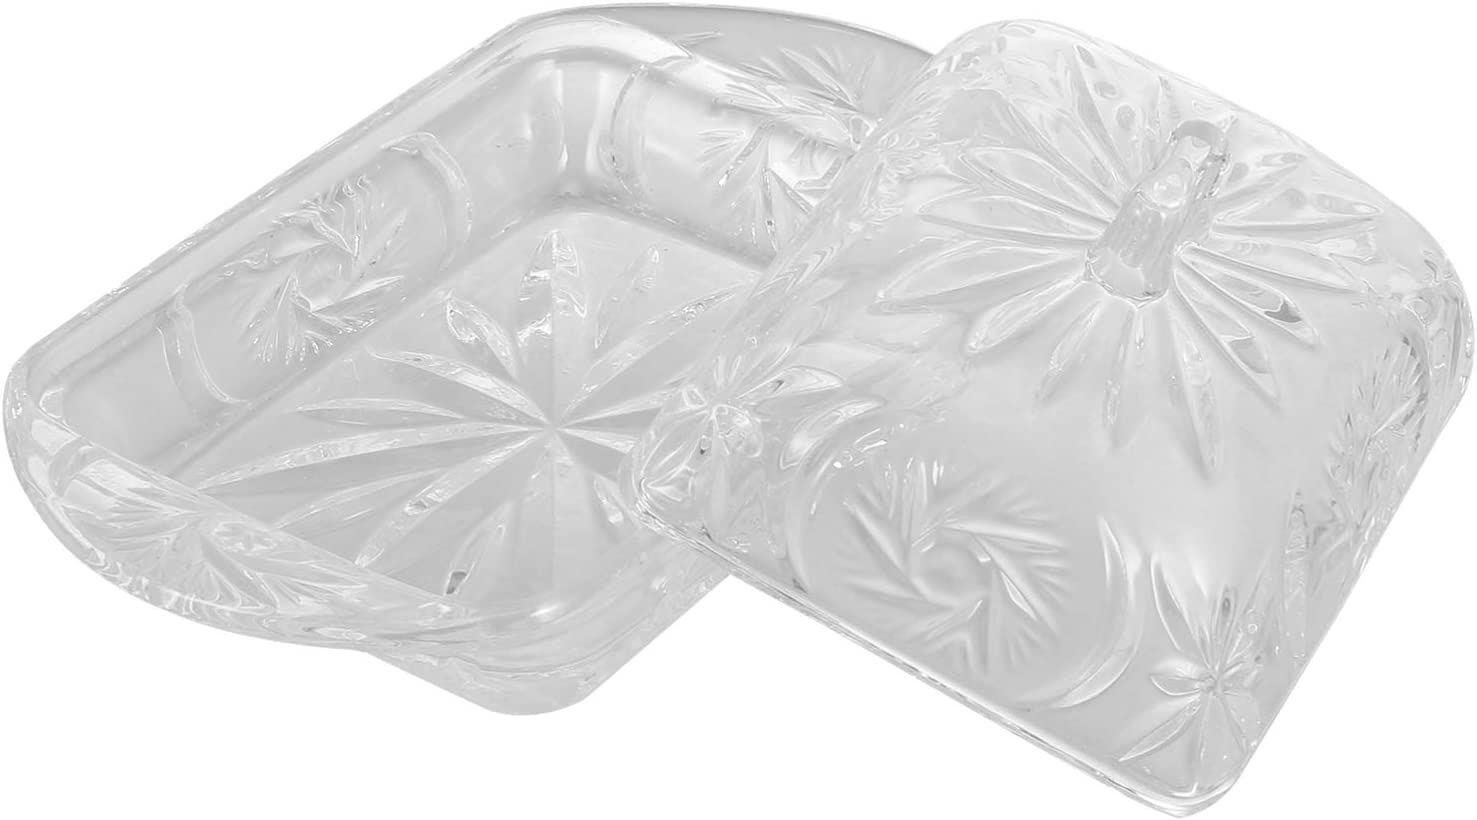 Cabilock Glass Butter Dish with Lid Crystal Covered Rectangular Butter Dish Butter Keeper Box Bread Dessert Holder Plate Food Container